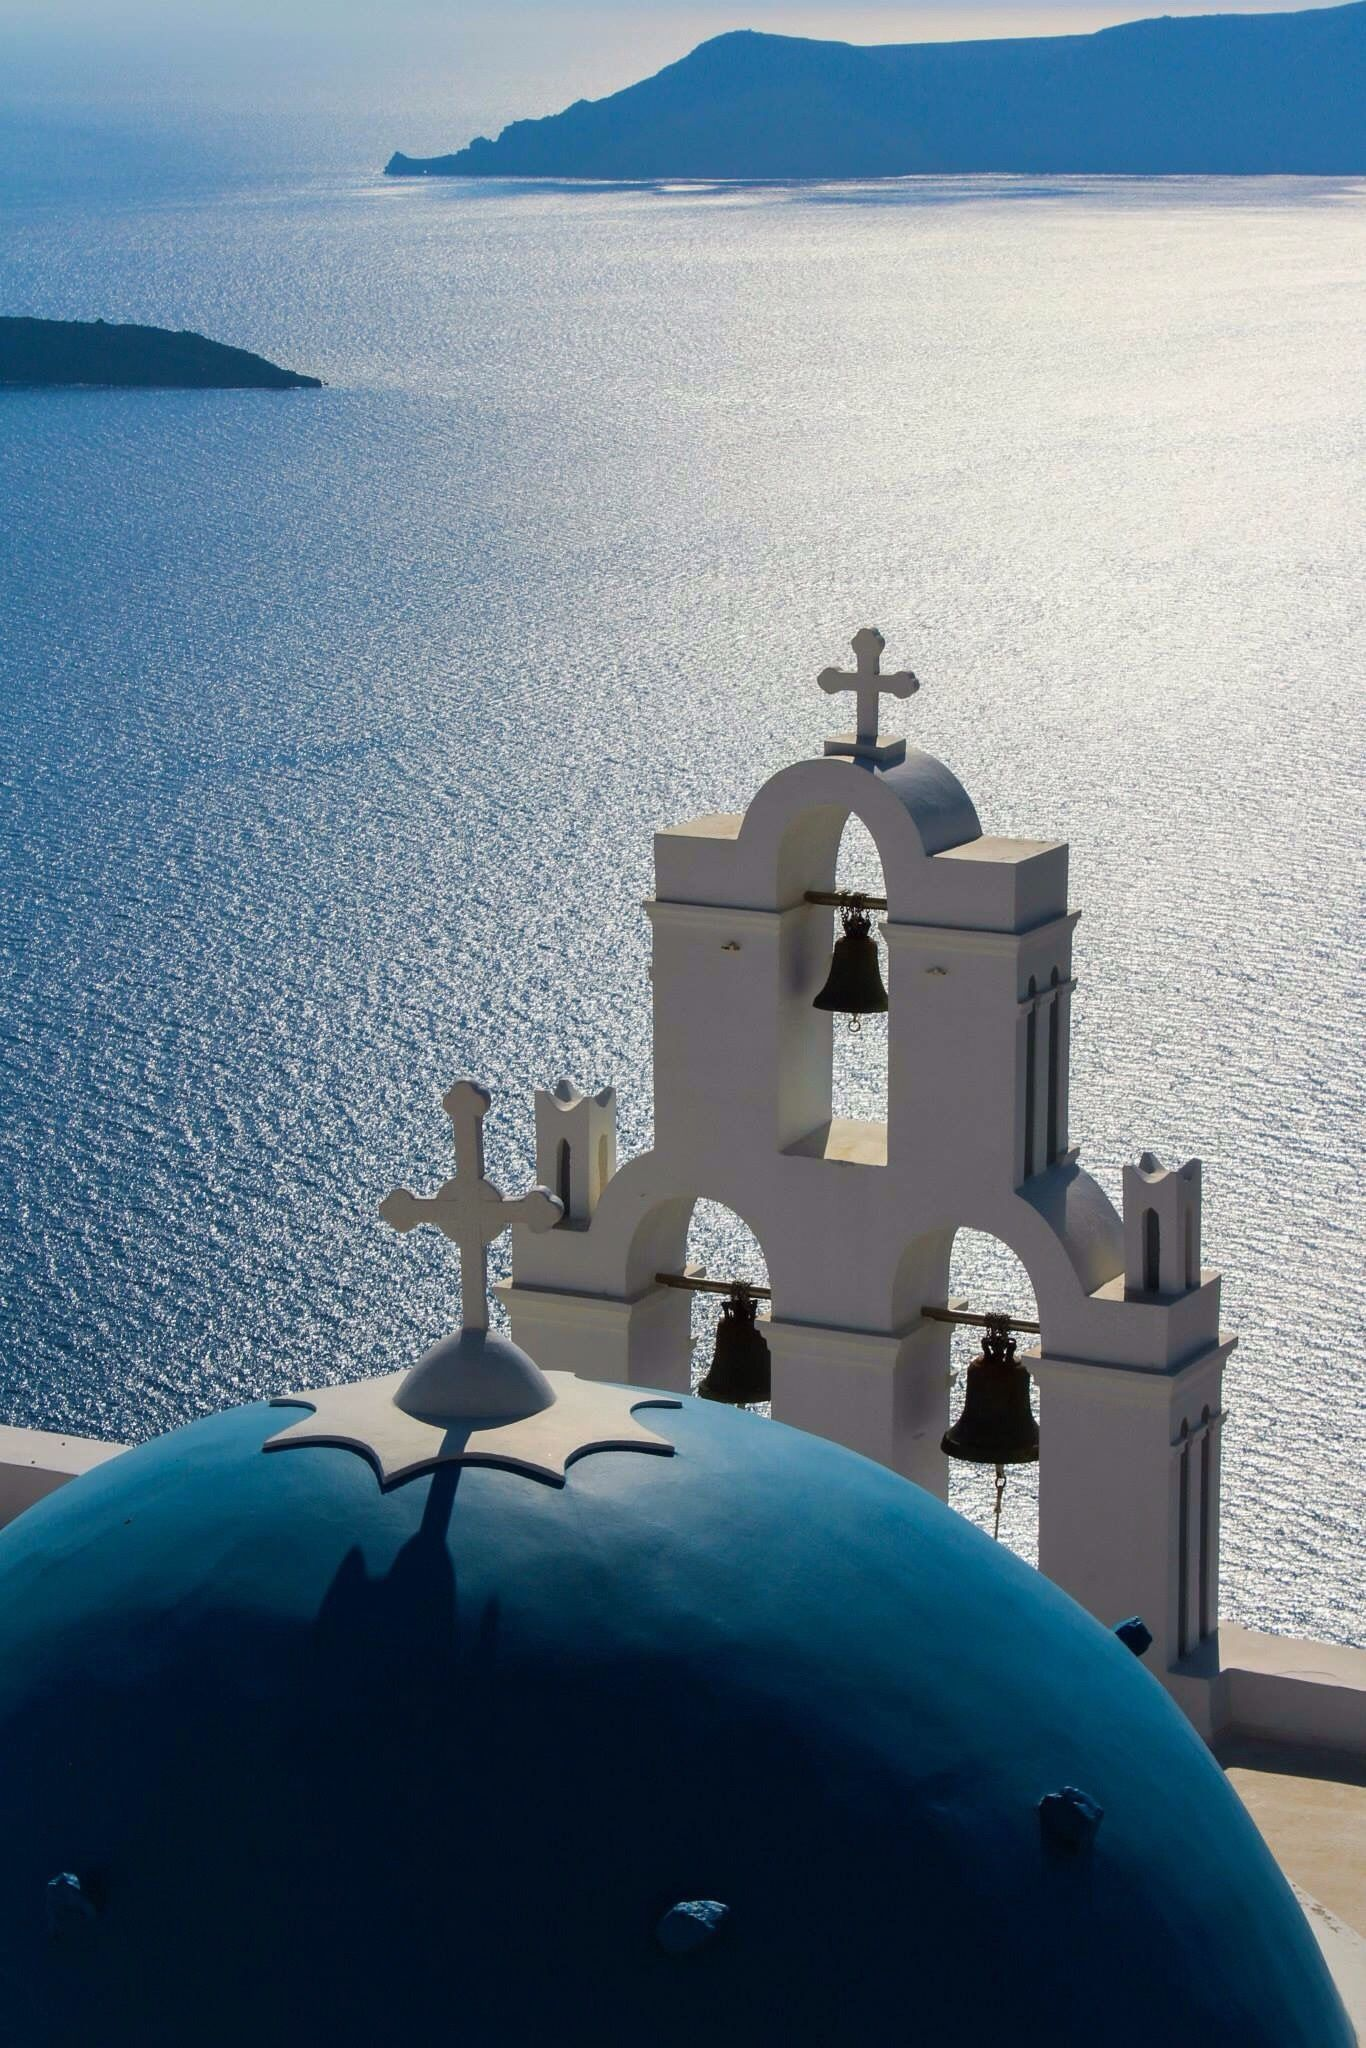 church in firostefani santorini mundo santorini. Black Bedroom Furniture Sets. Home Design Ideas